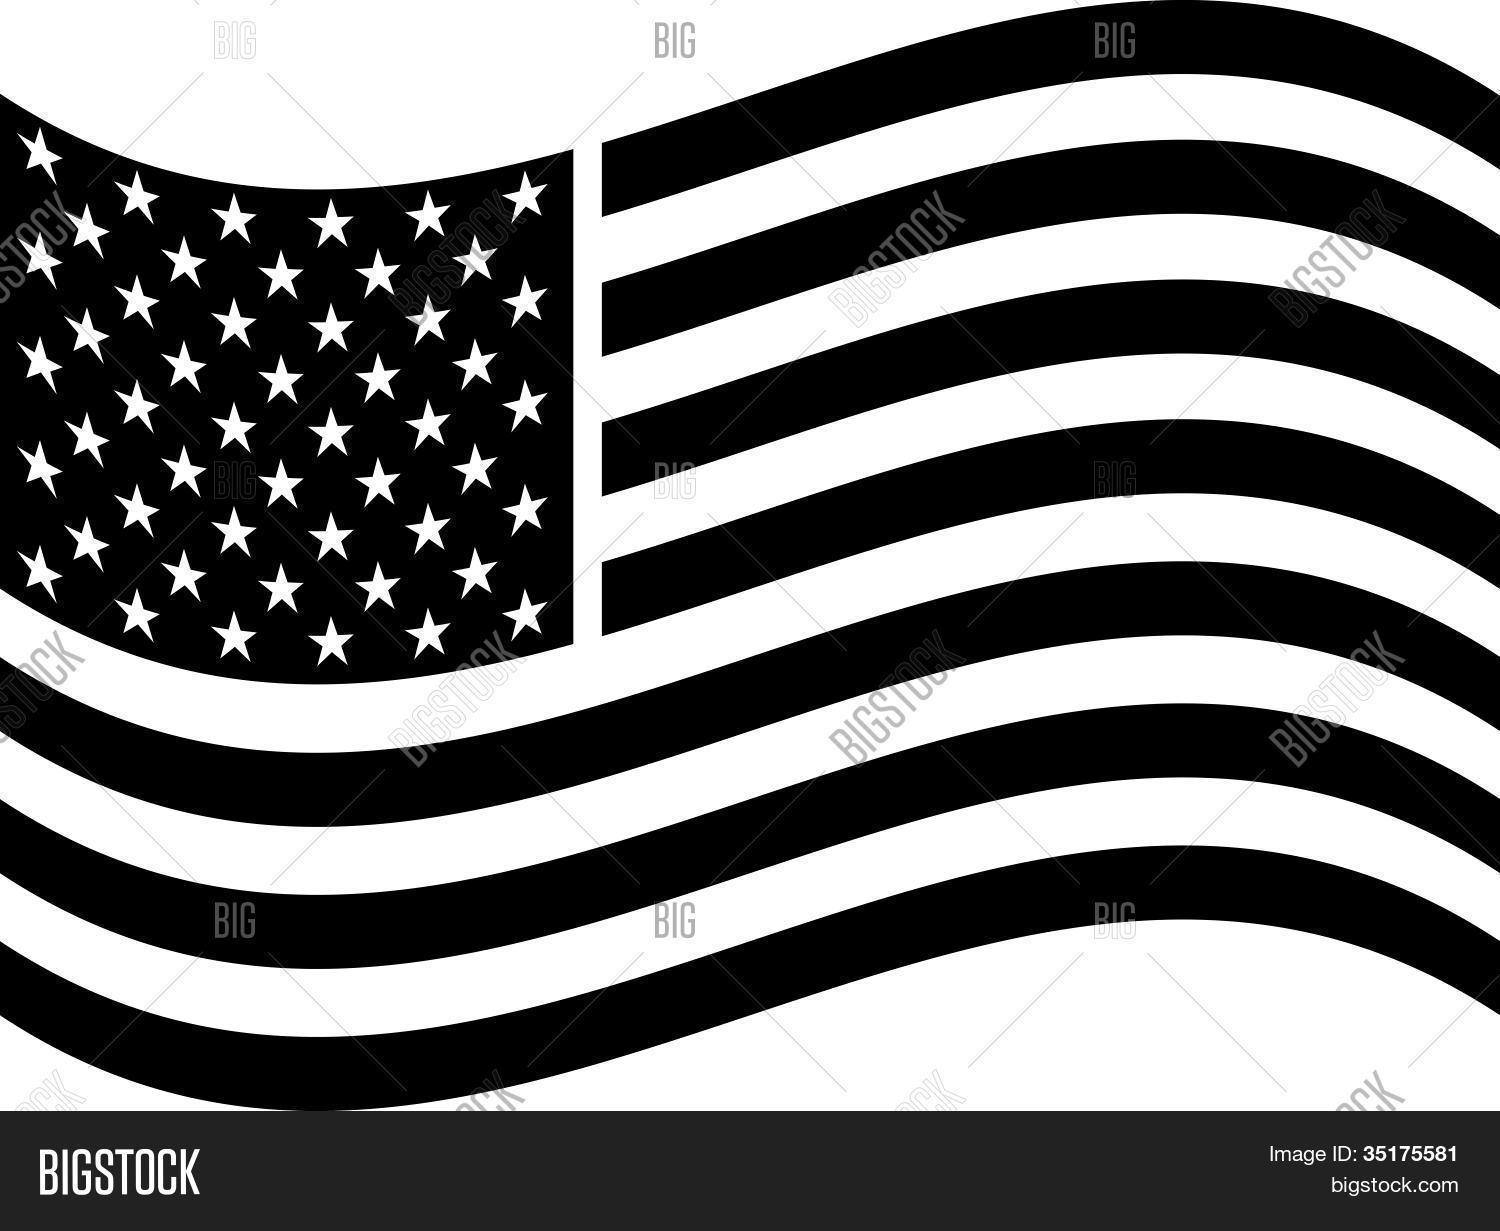 hight resolution of american flag clipart